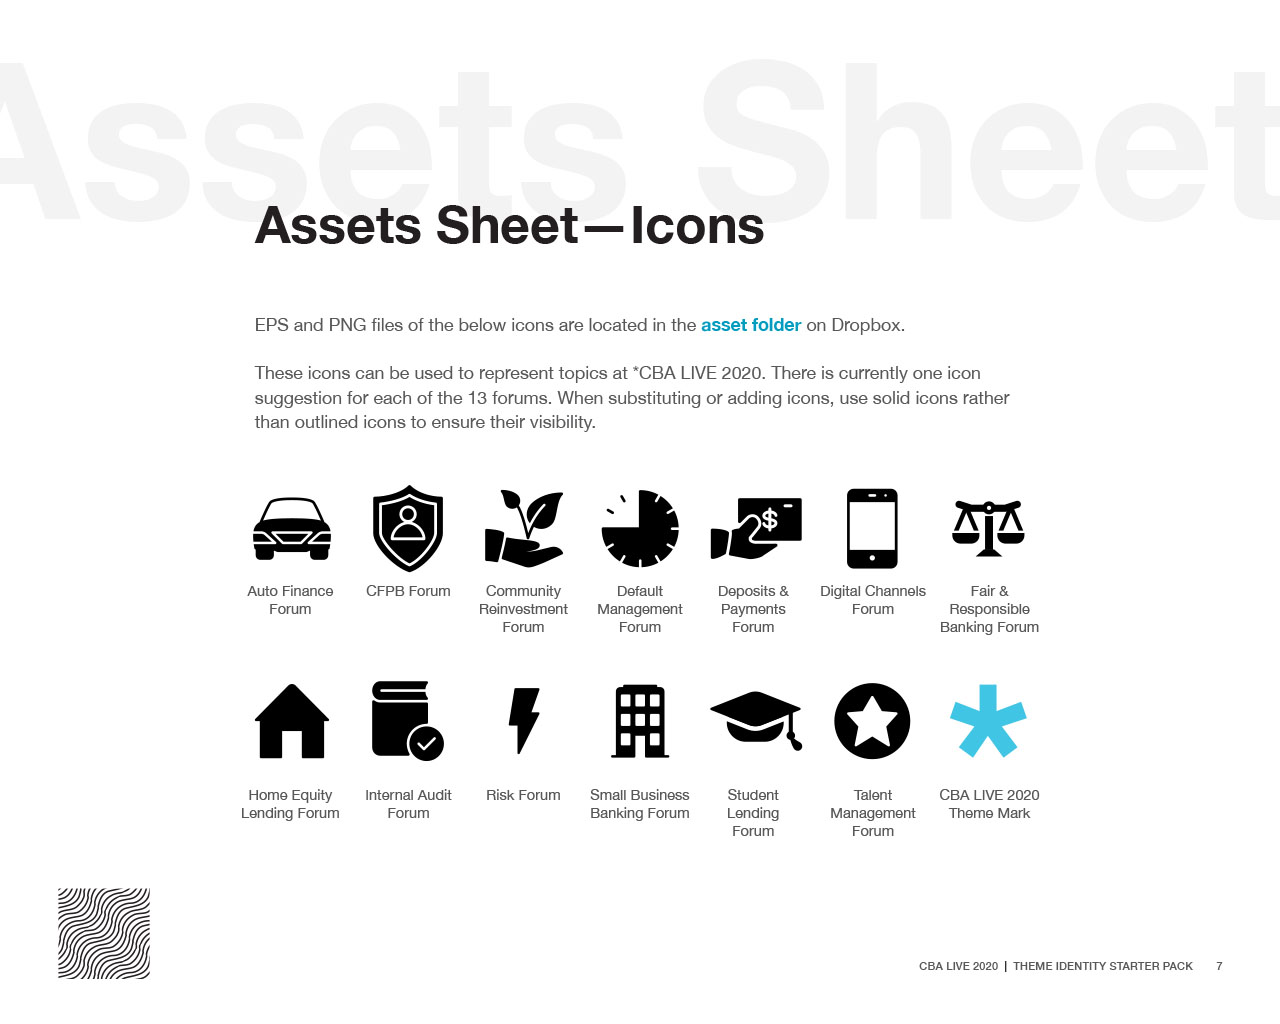 Assets sheet displaying CBA LIVE 2020 branded icons